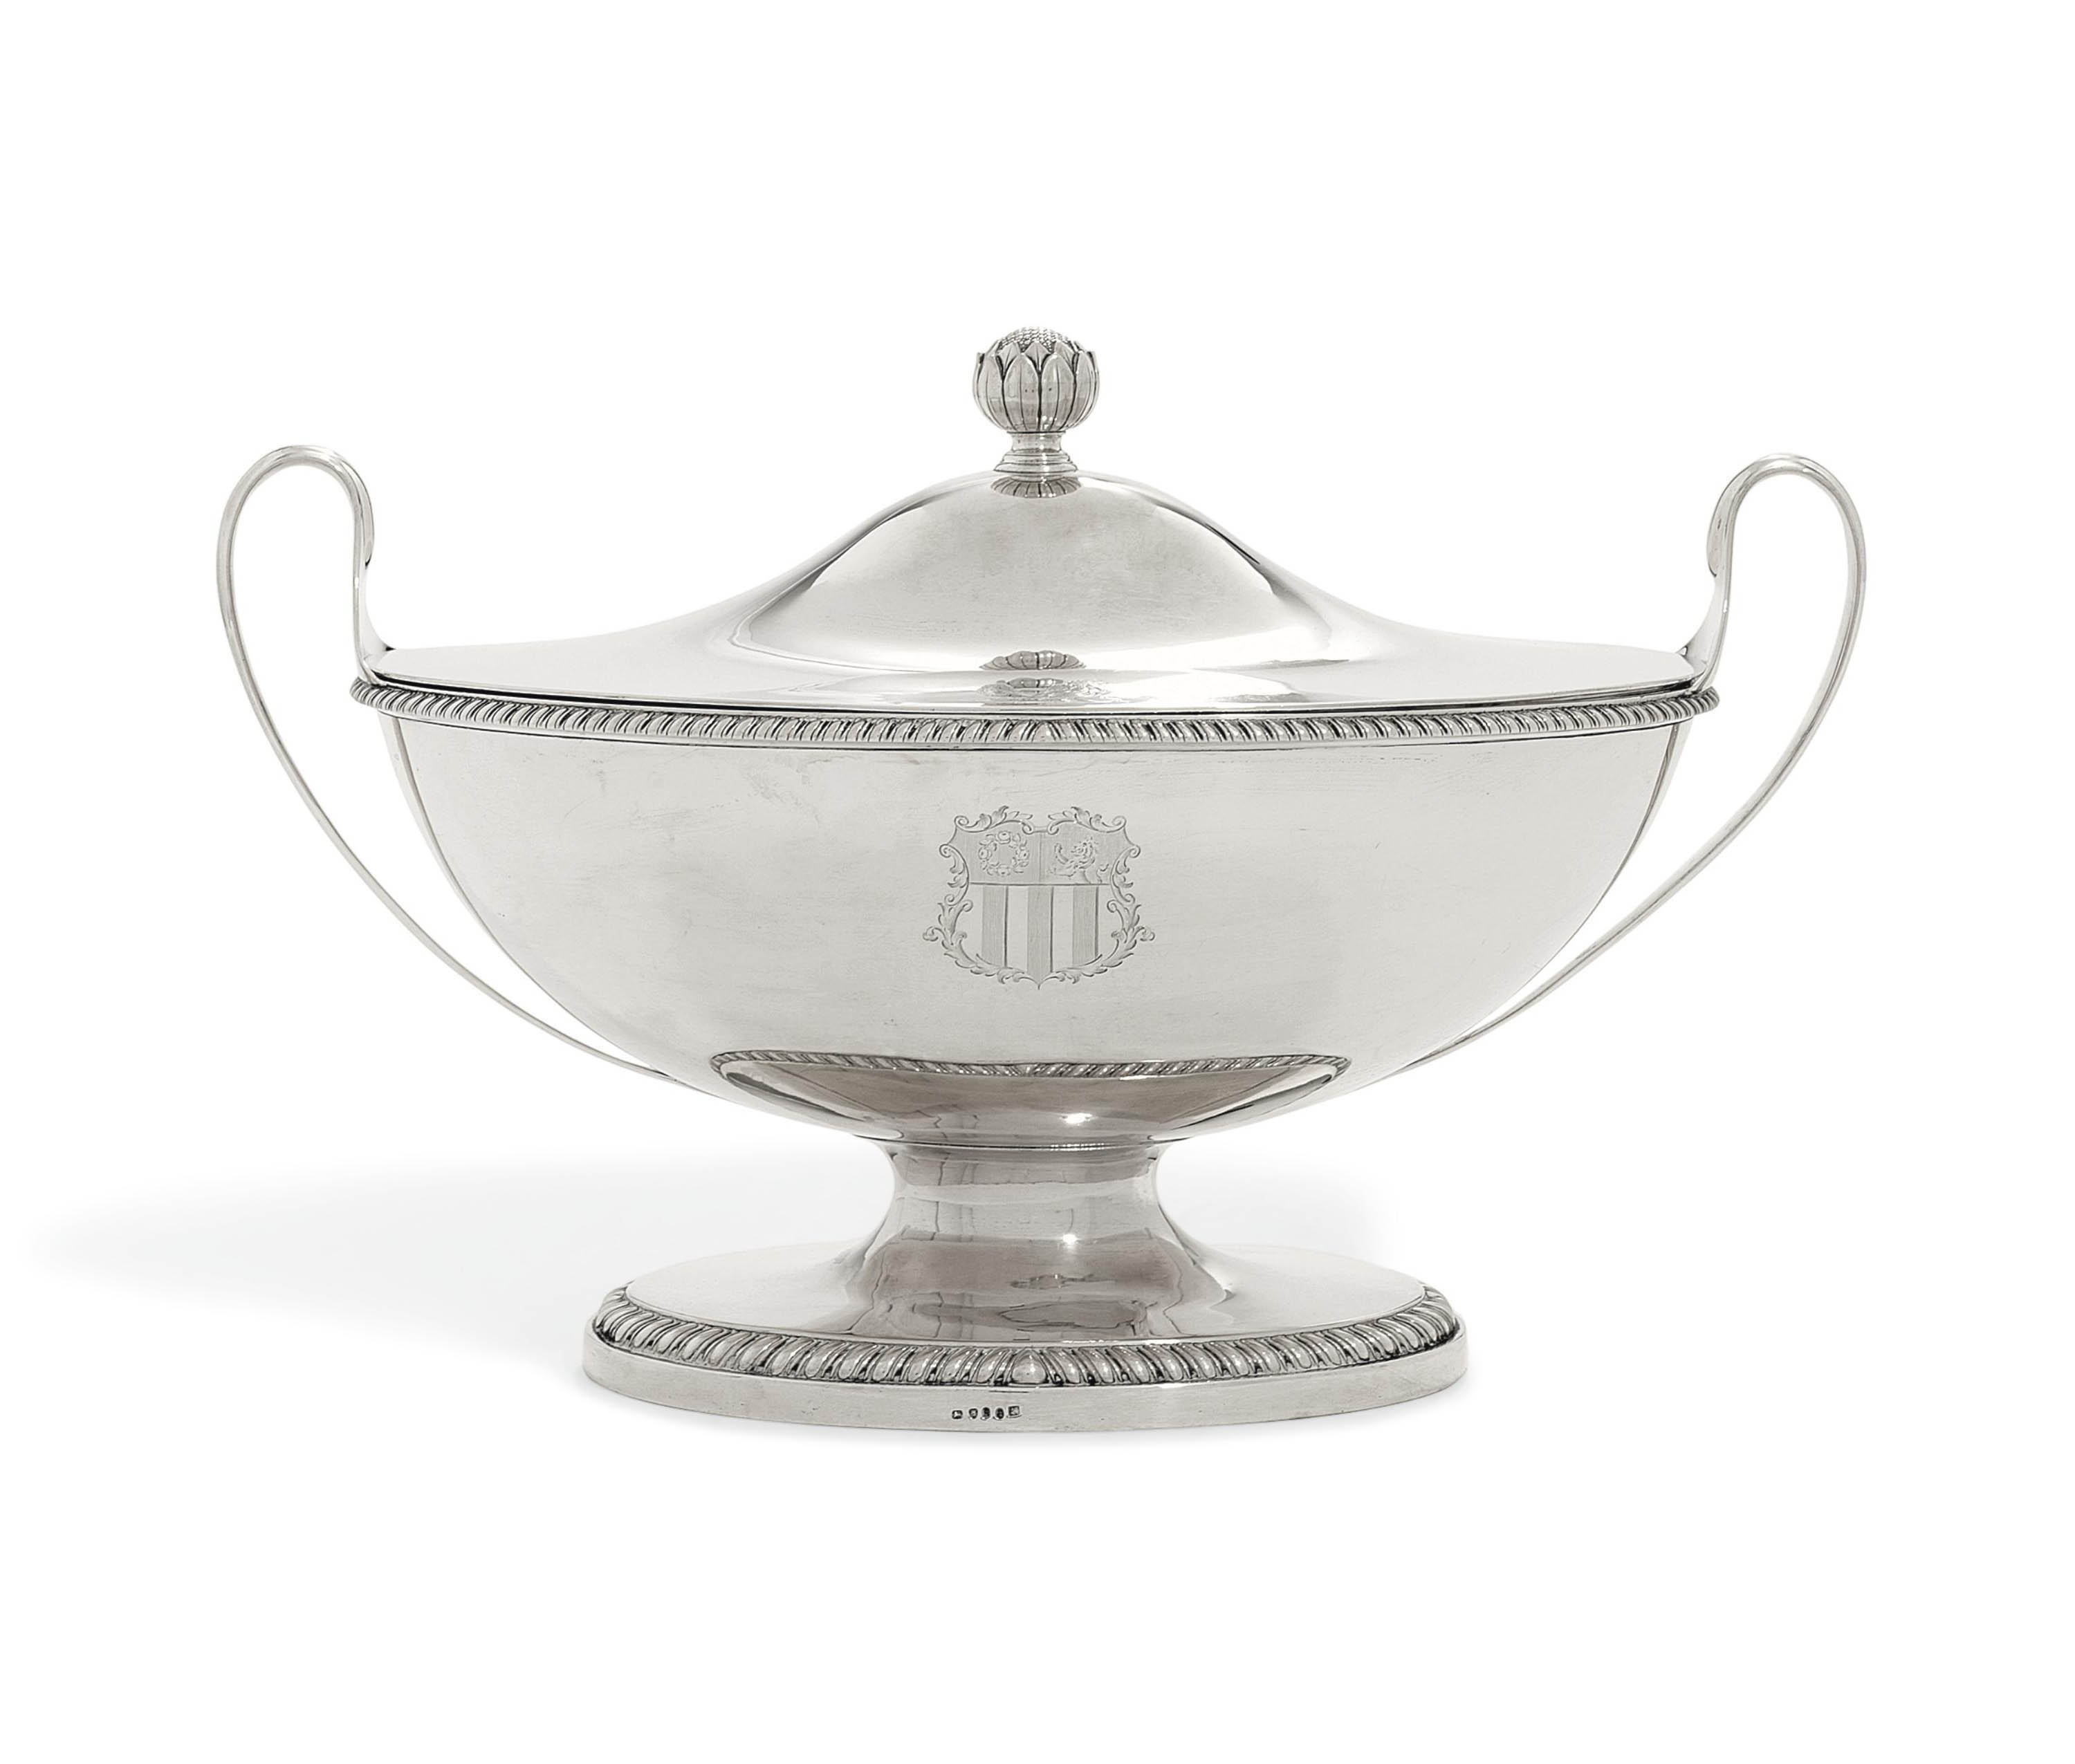 A GEORGE III SILVER SOUP-TUREEN AND COVER